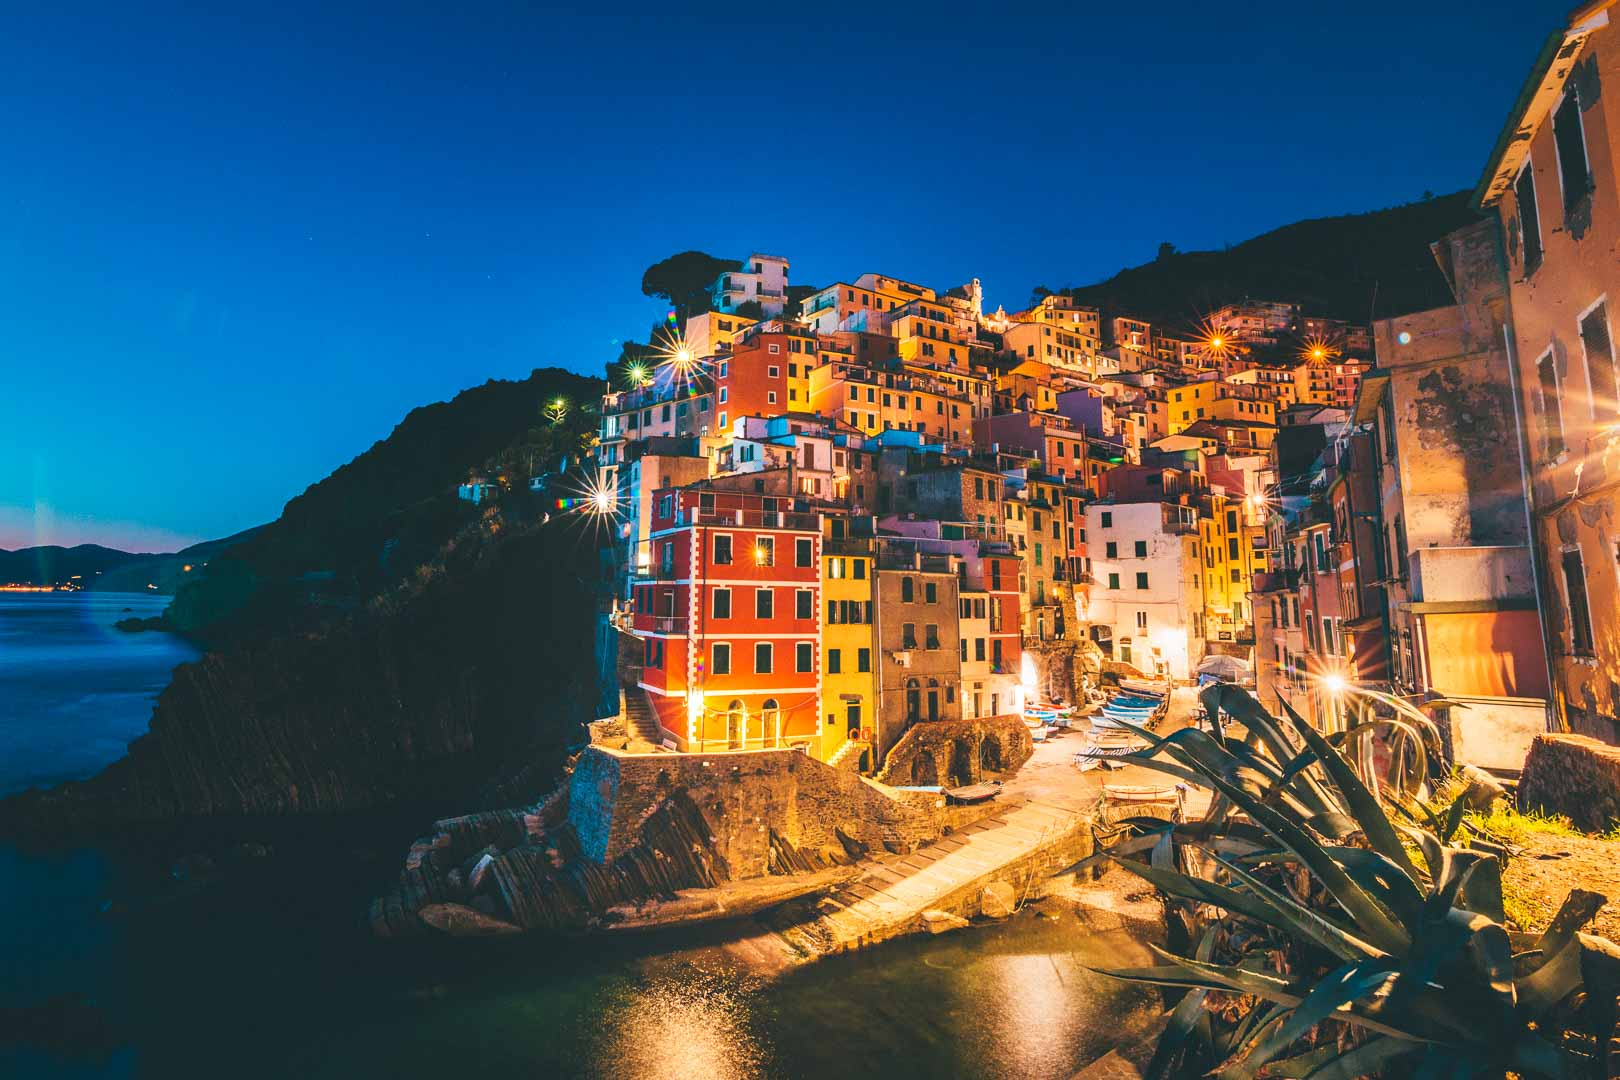 The Heart Of Cinque Terre cinque terre, italy - the ultimate travel guide + best